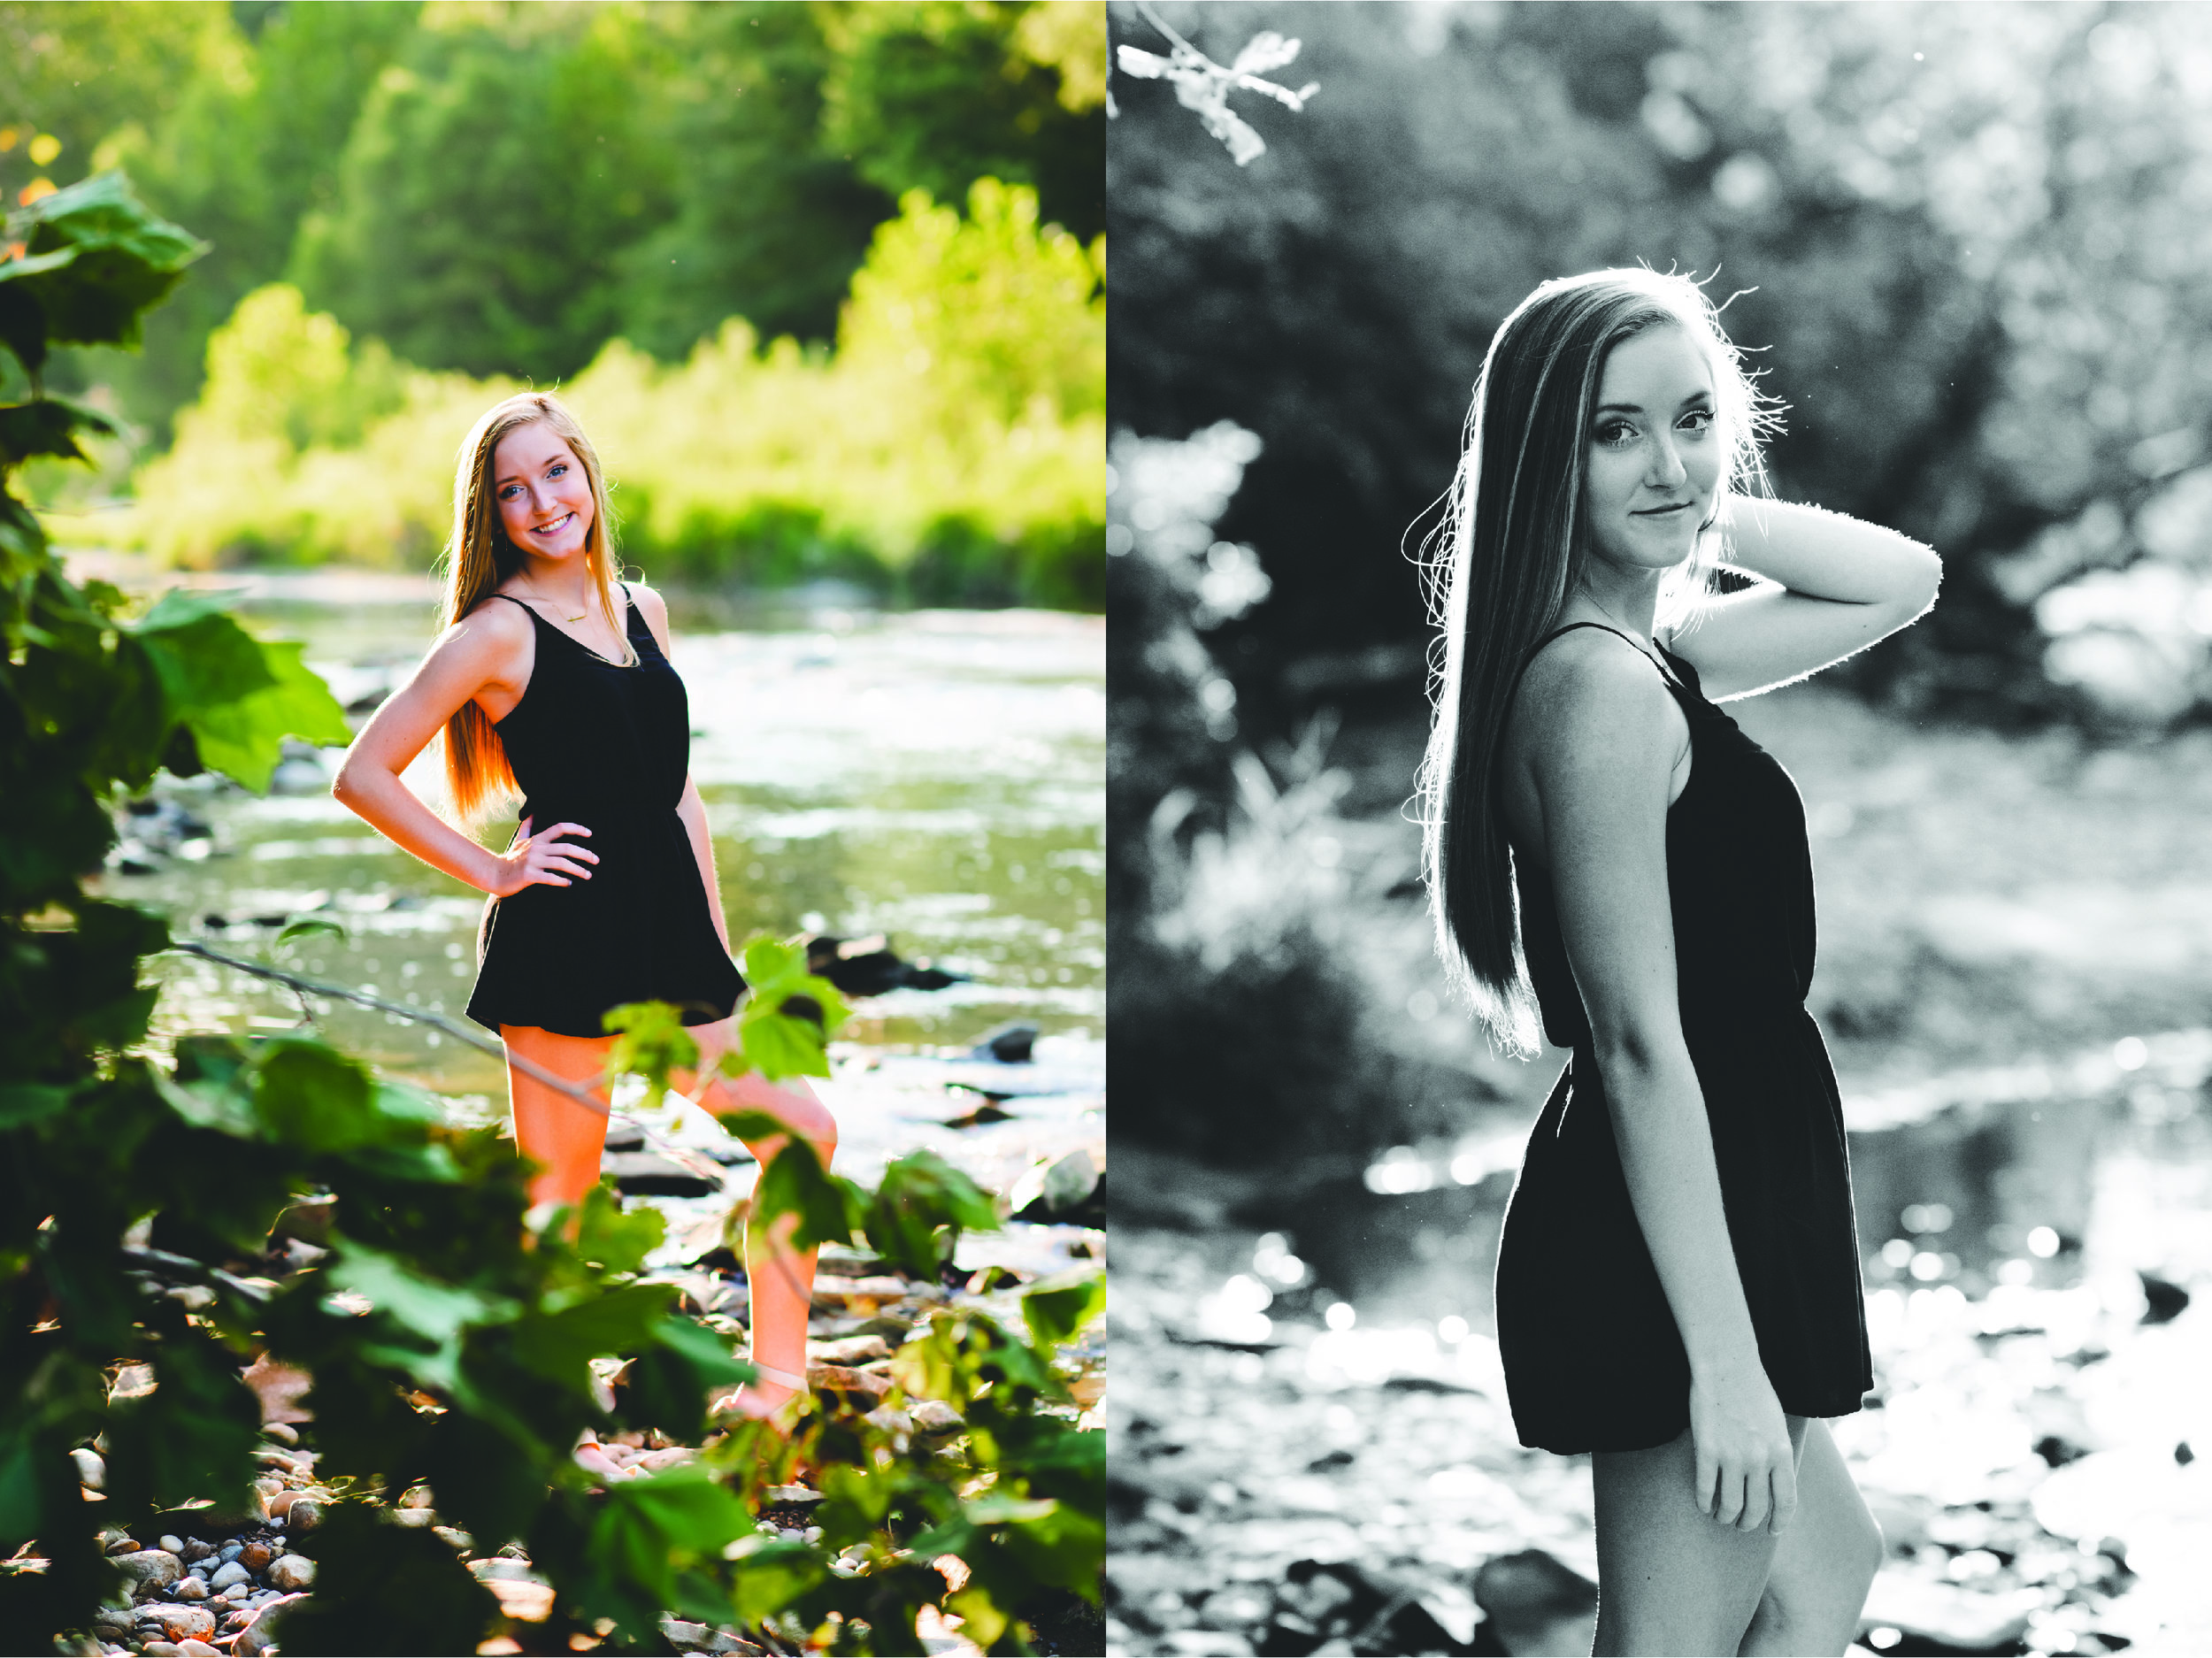 Plainfield senior photography - Ally 2020